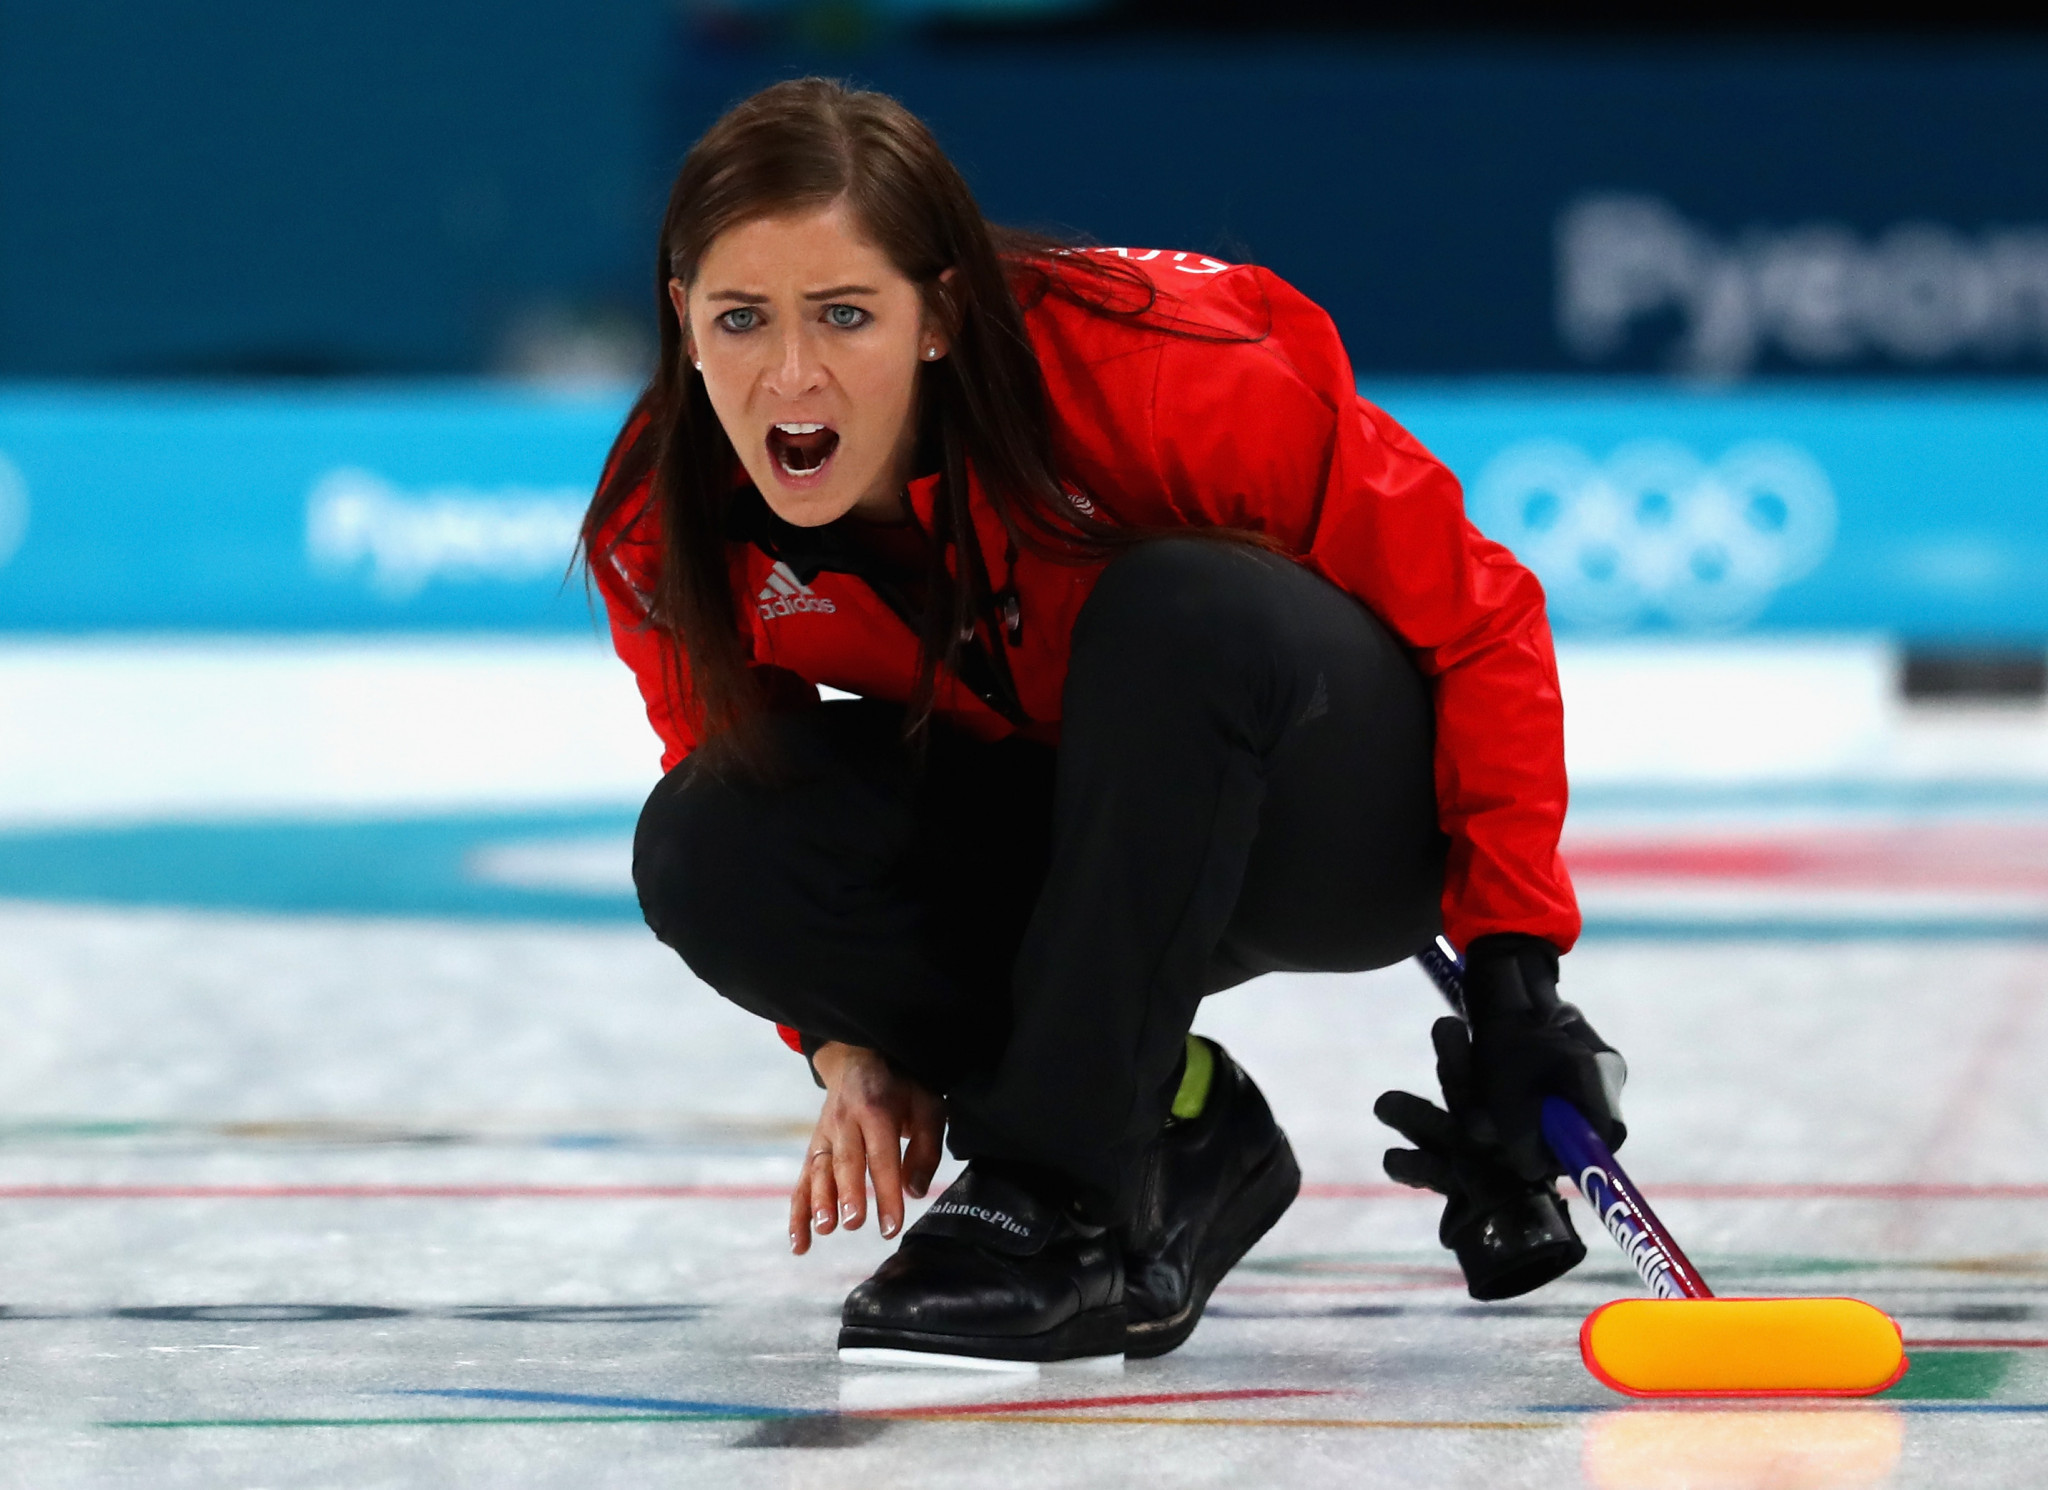 Muirhead joins hasta World to help raise curling's profile prior to Beijing 2022